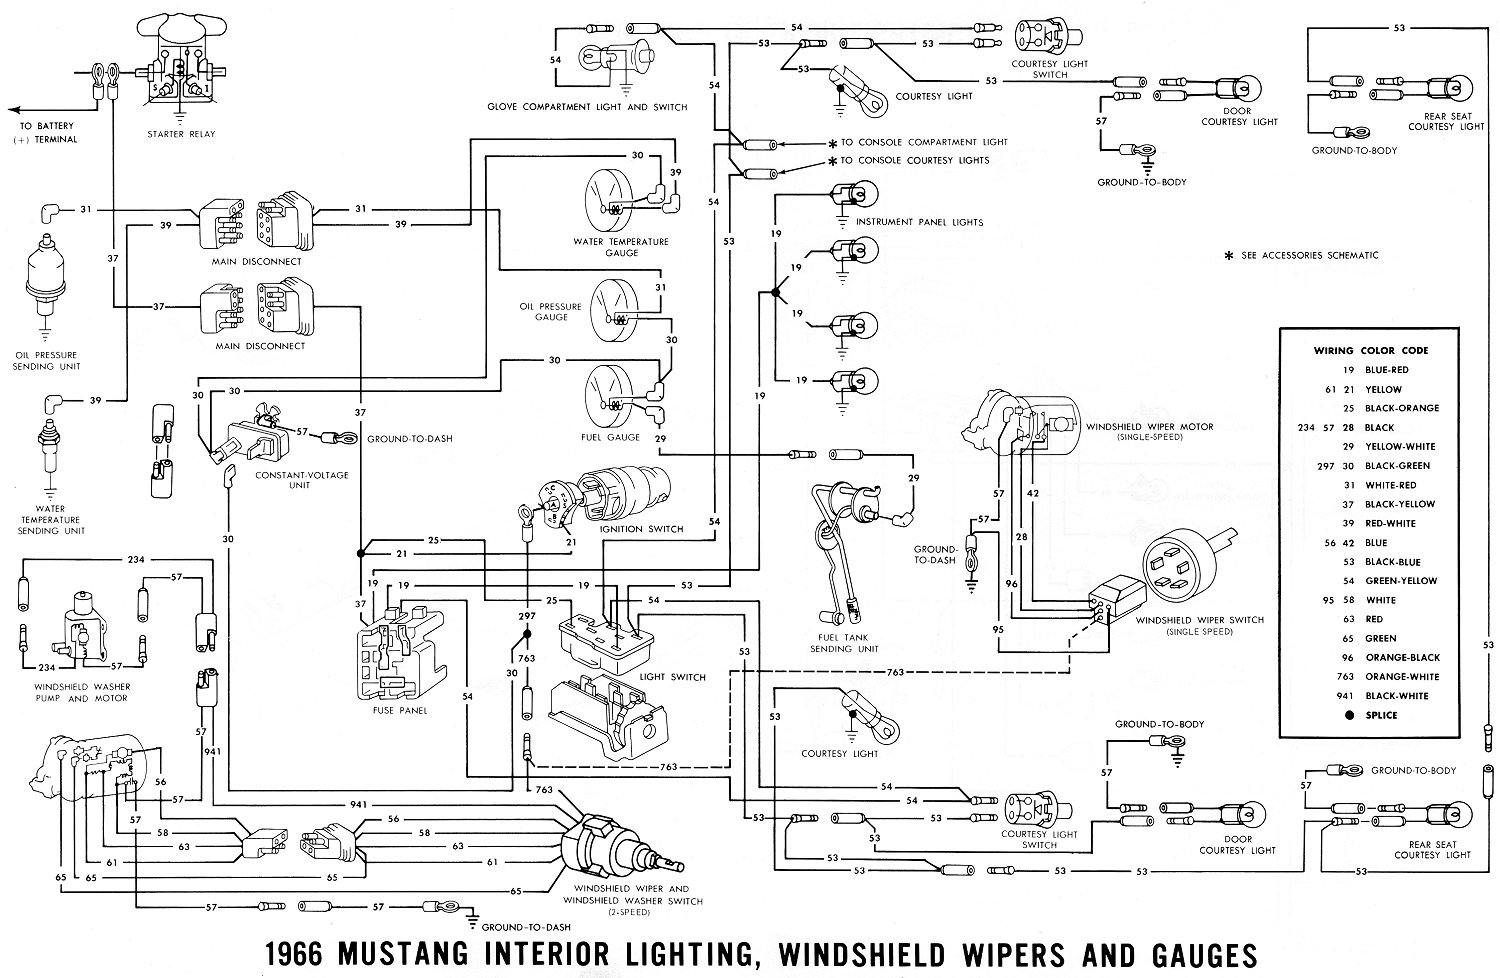 [SCHEMATICS_48IS]  1966 Mustang Wiring Diagrams - Average Joe Restoration | 1966 Mustang Wiring Diagram Tachometer |  | Average Joe Restoration